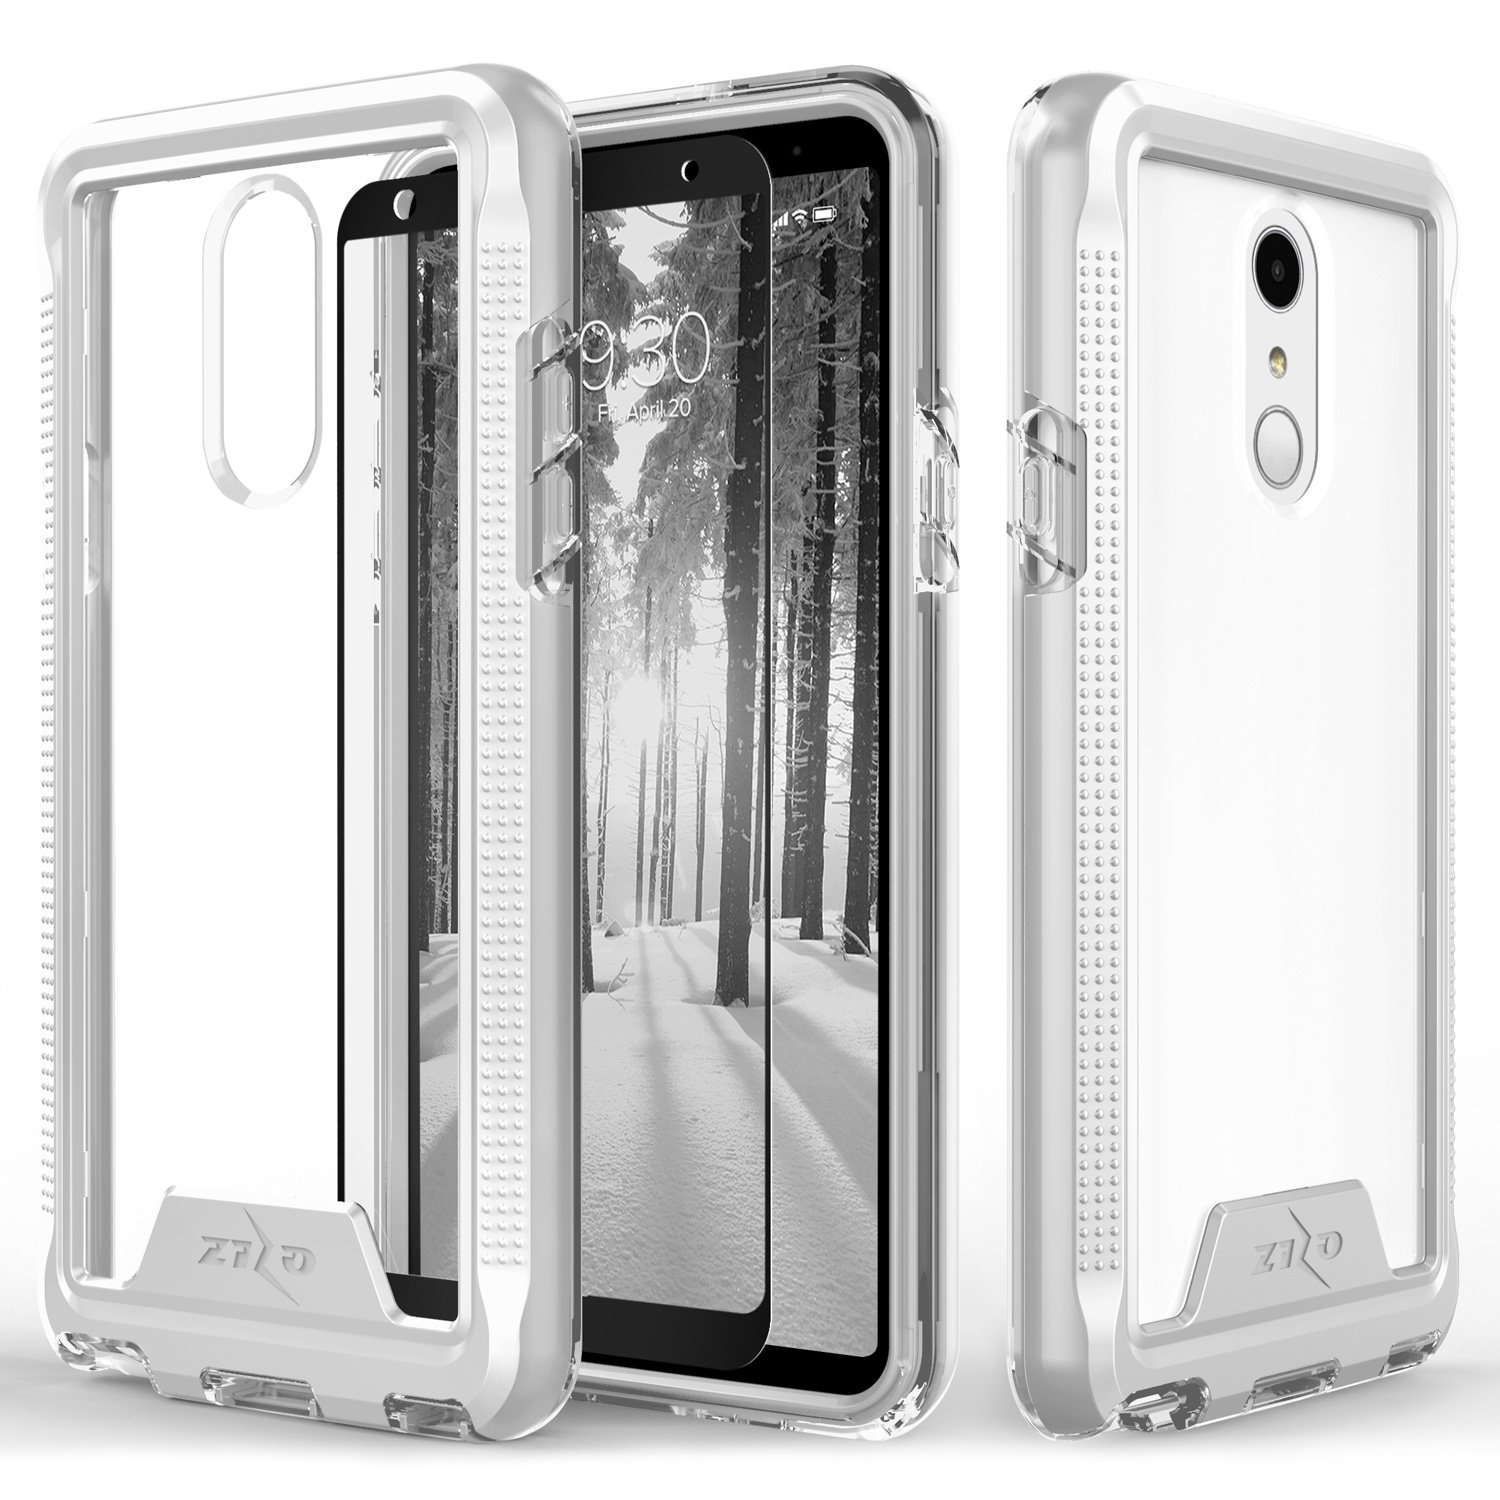 Zizo ION Series Compatible with LG Stylo 4 Case Military Grade Drop Tested with Tempered Glass Screen Protector Silver Clear 4344271329